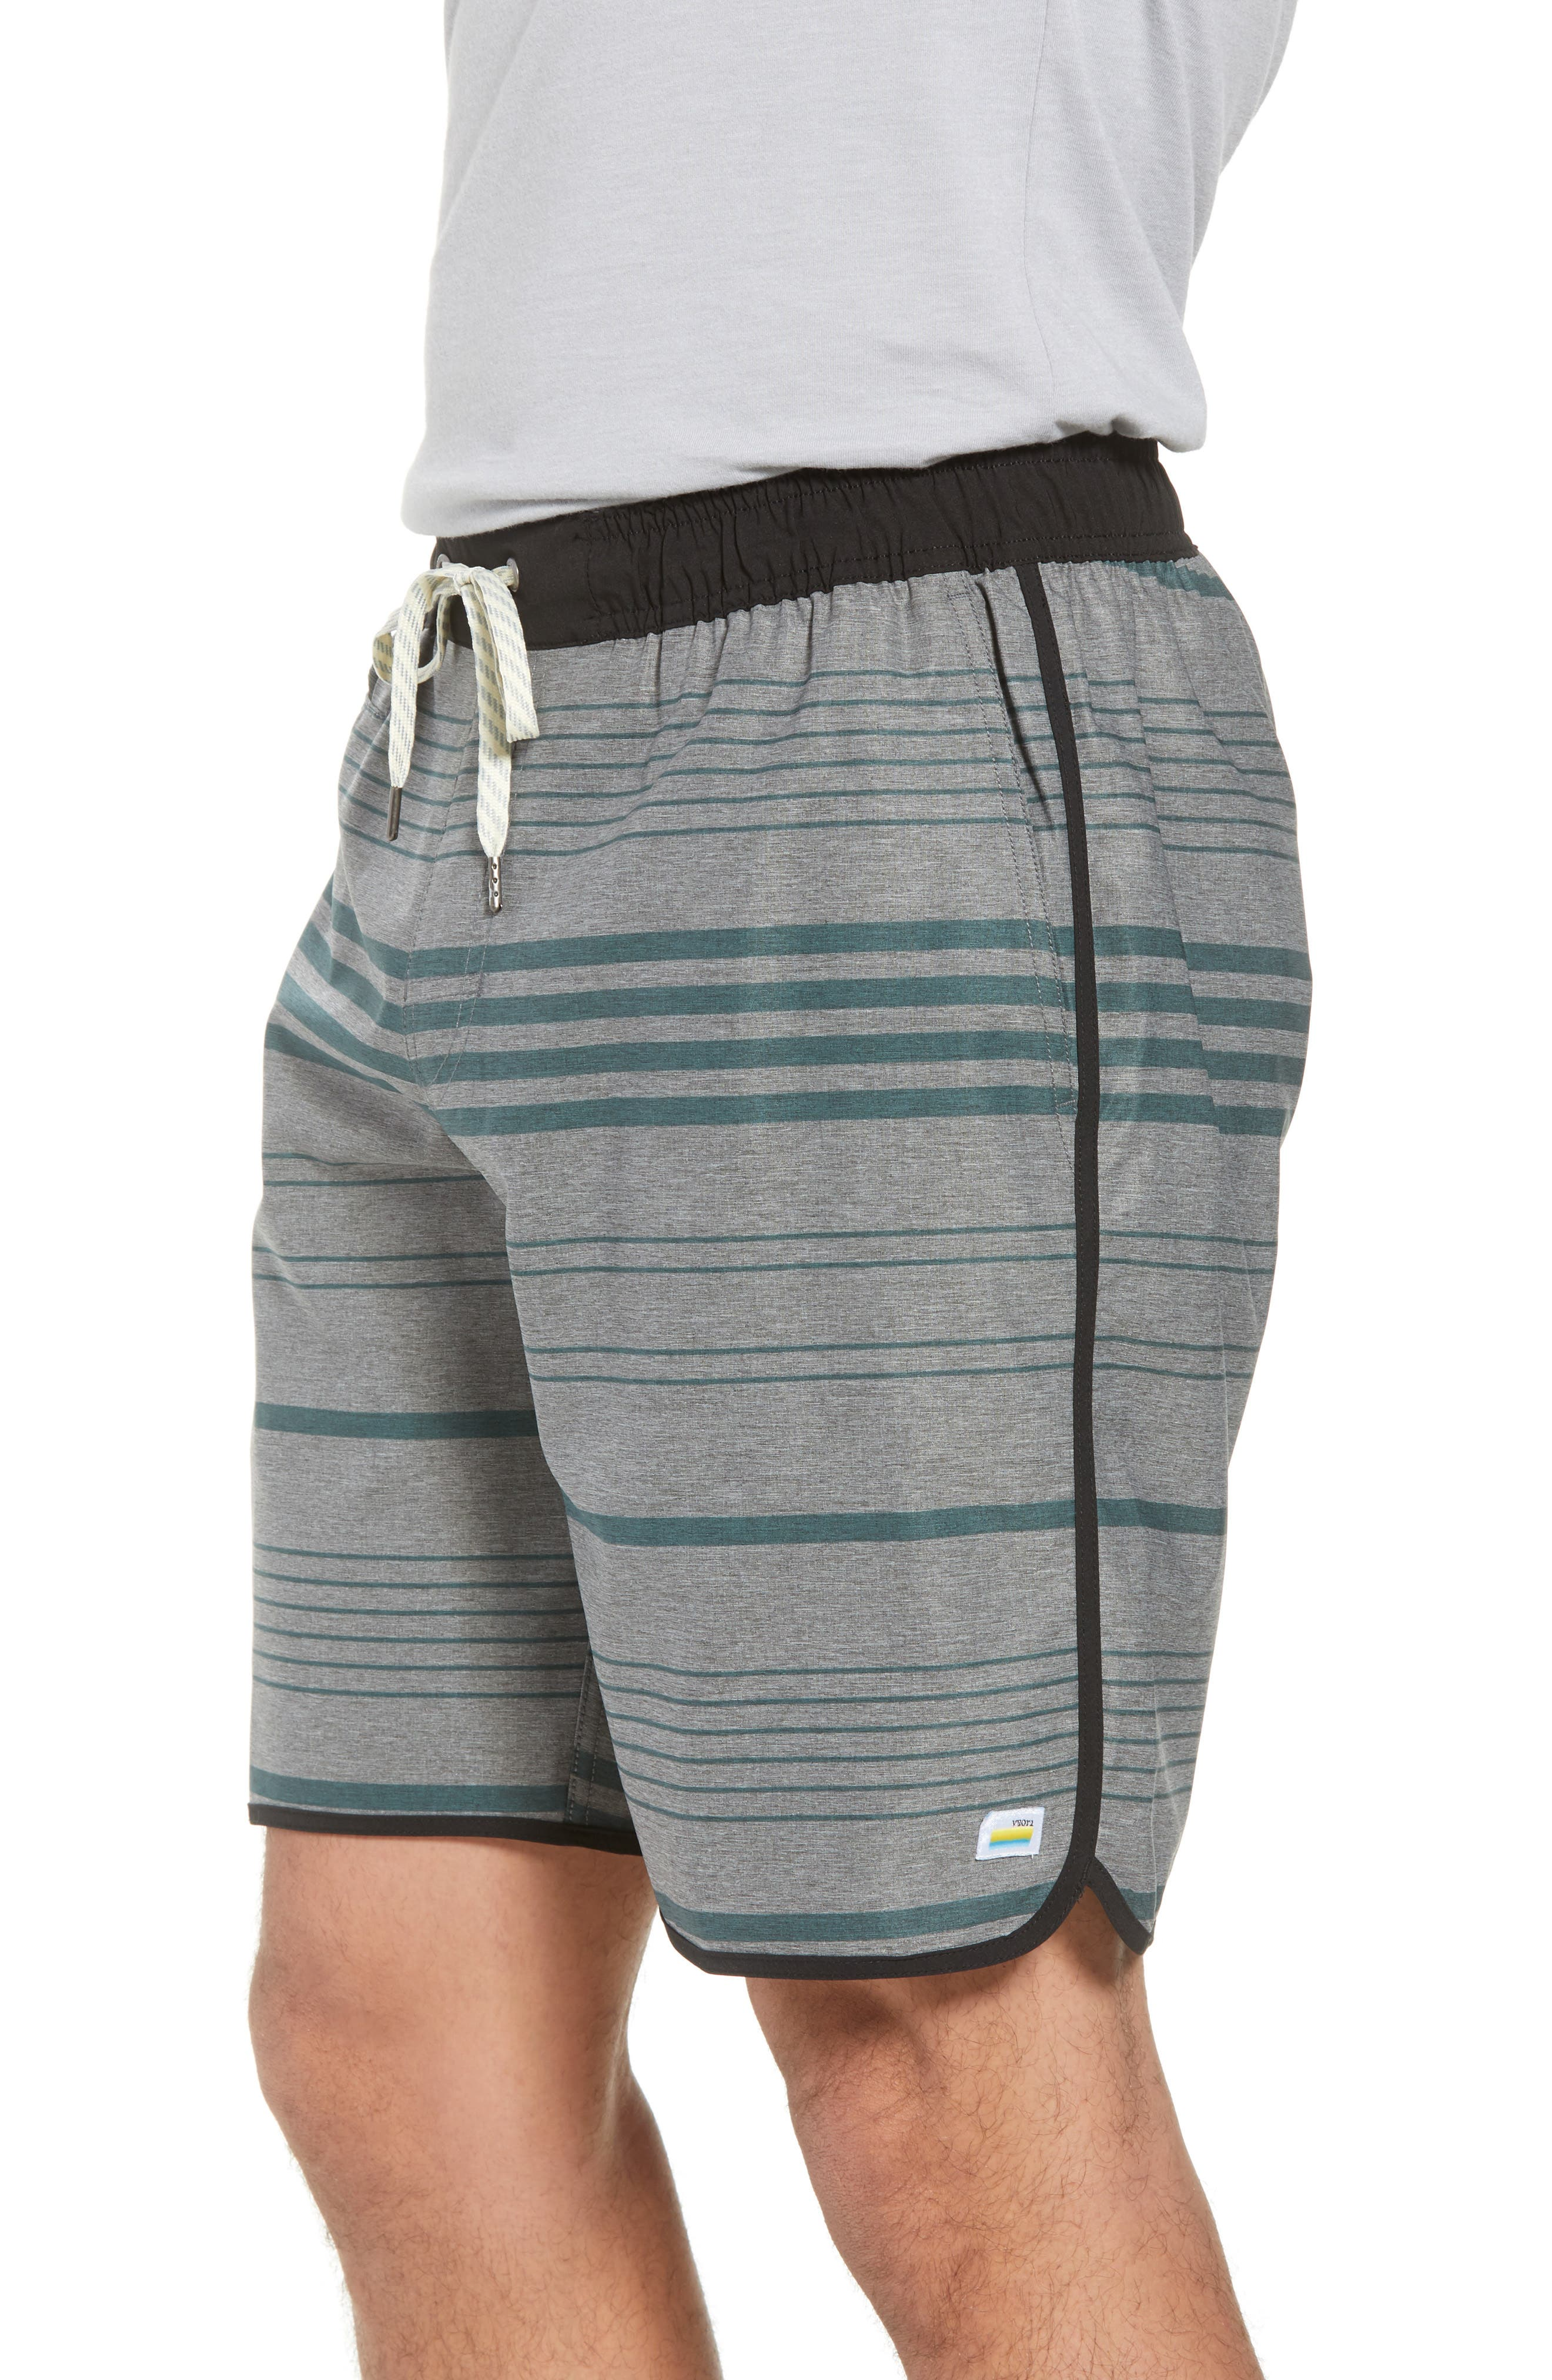 VUORI, Banks Performance Hybrid Shorts, Alternate thumbnail 4, color, CANYON MICRO STRIPE